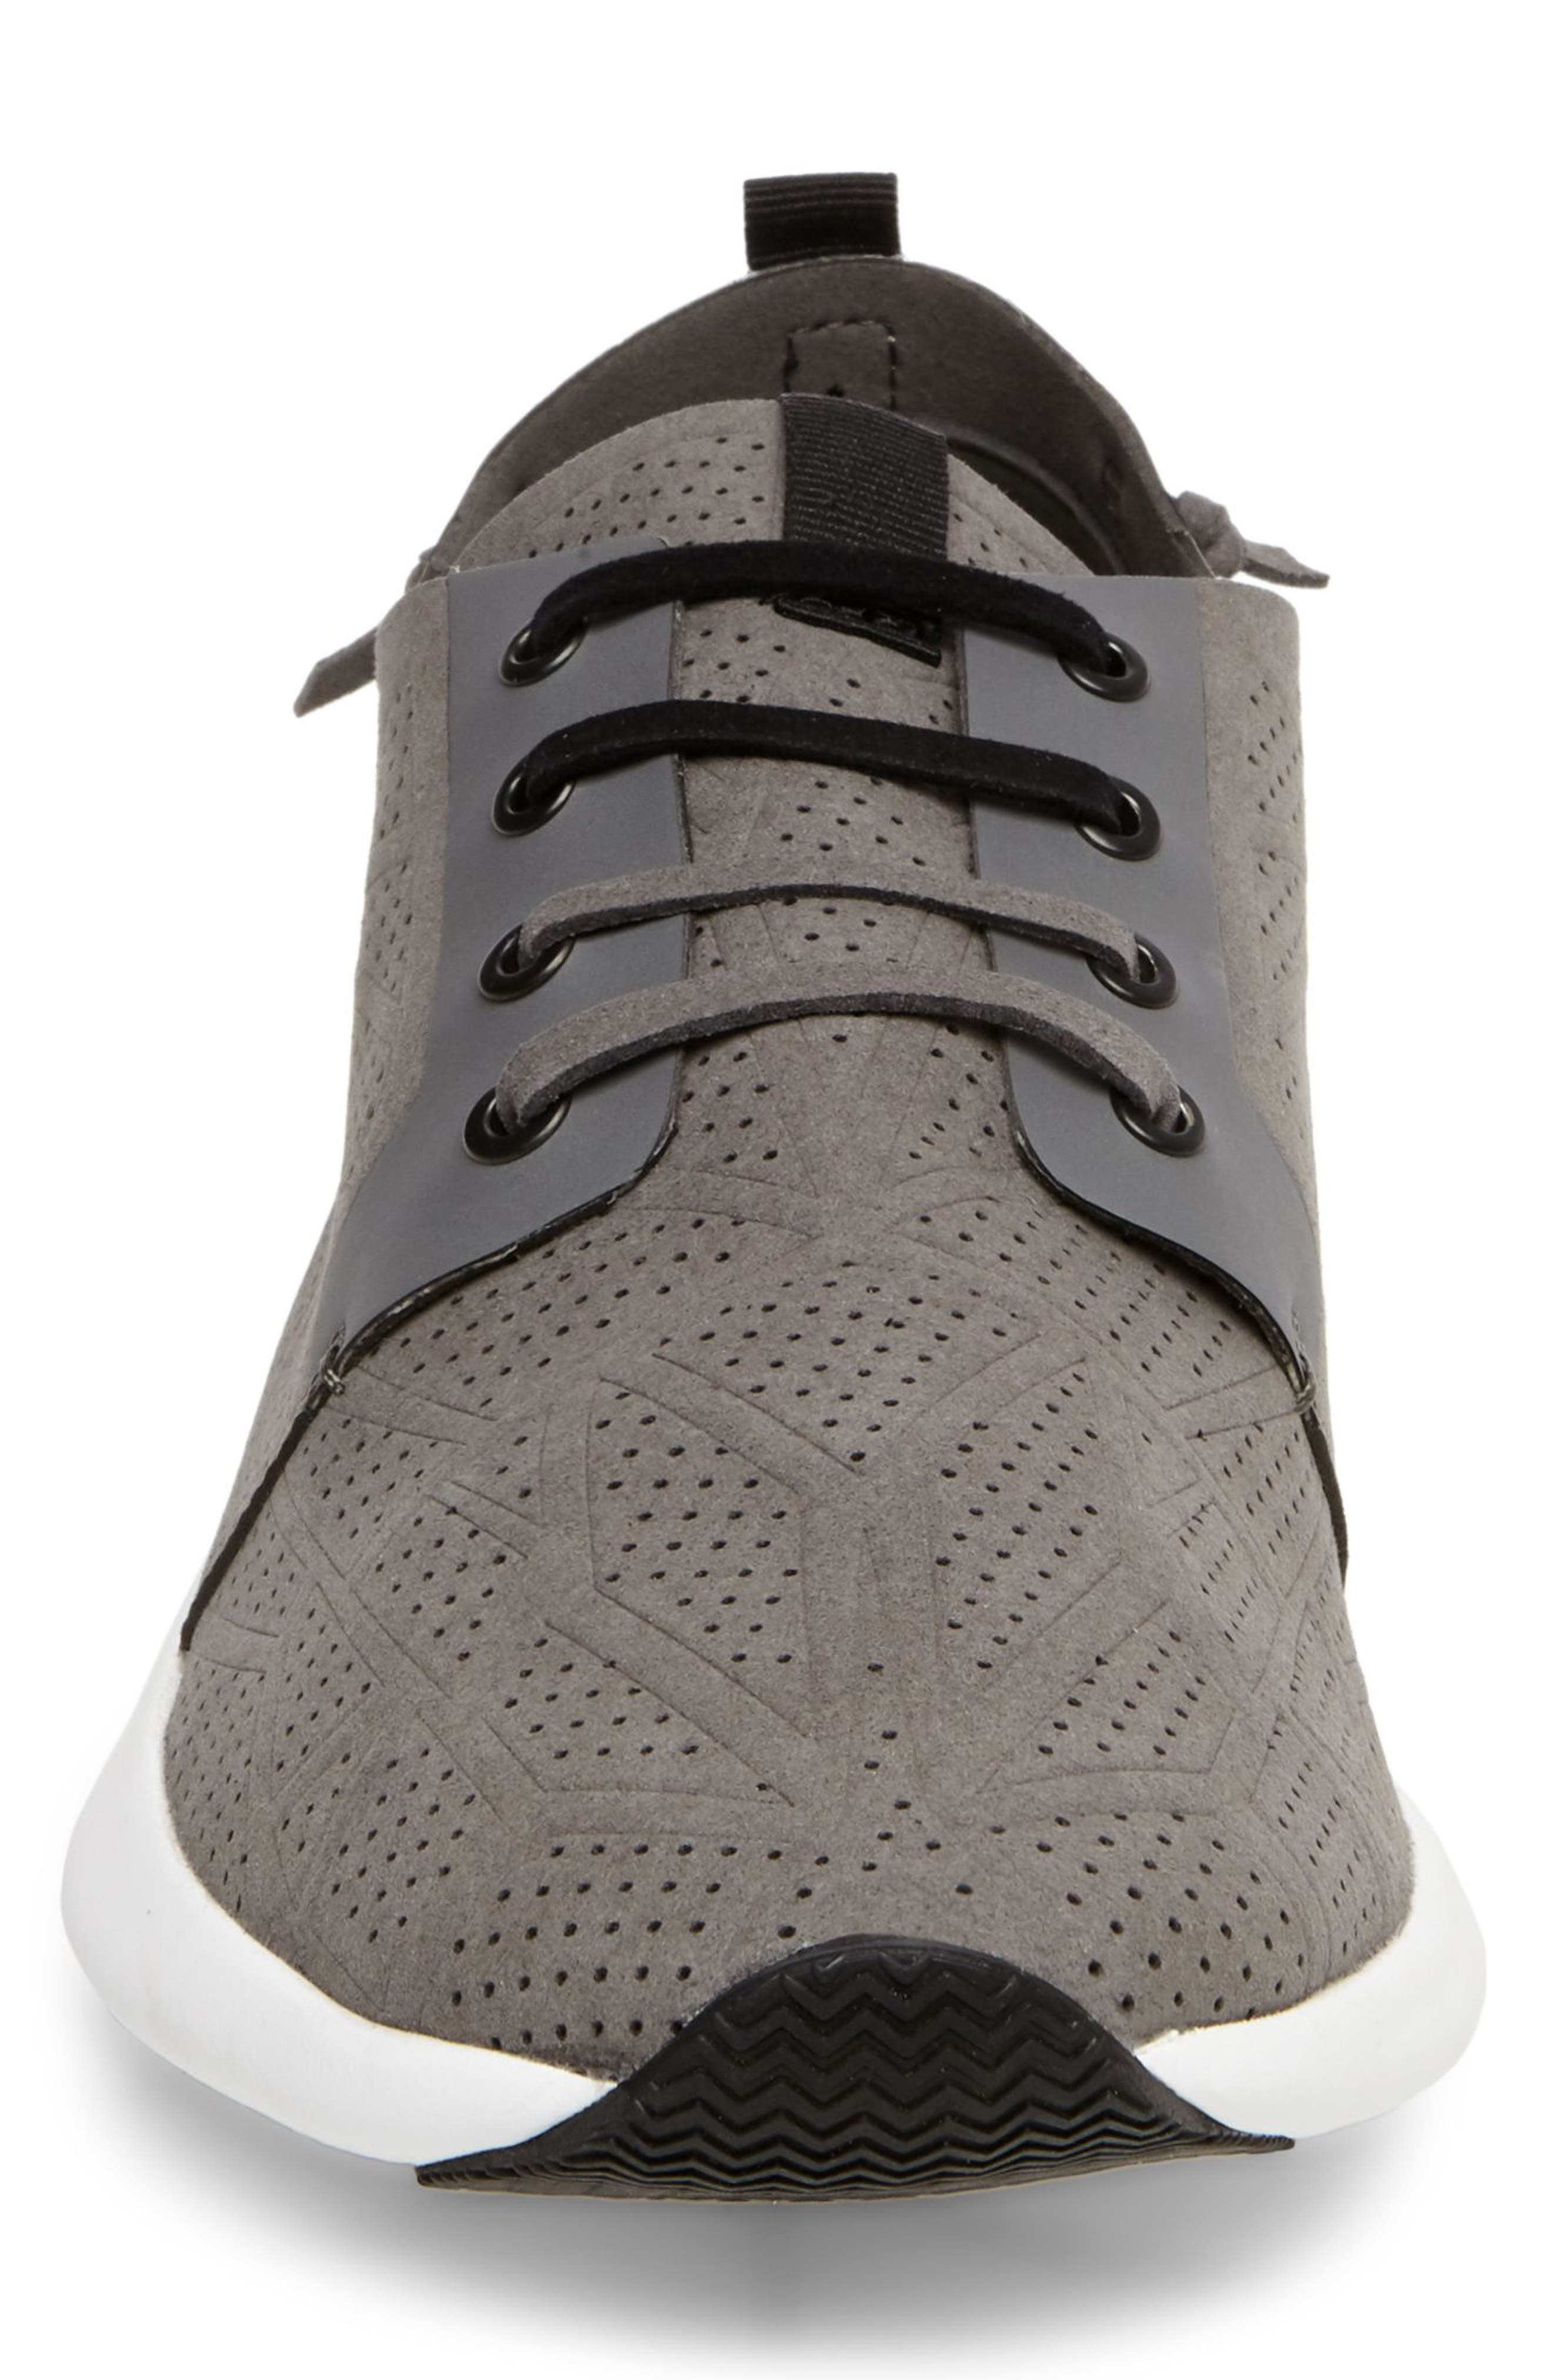 Batali Perforated Sneaker,                             Alternate thumbnail 4, color,                             055